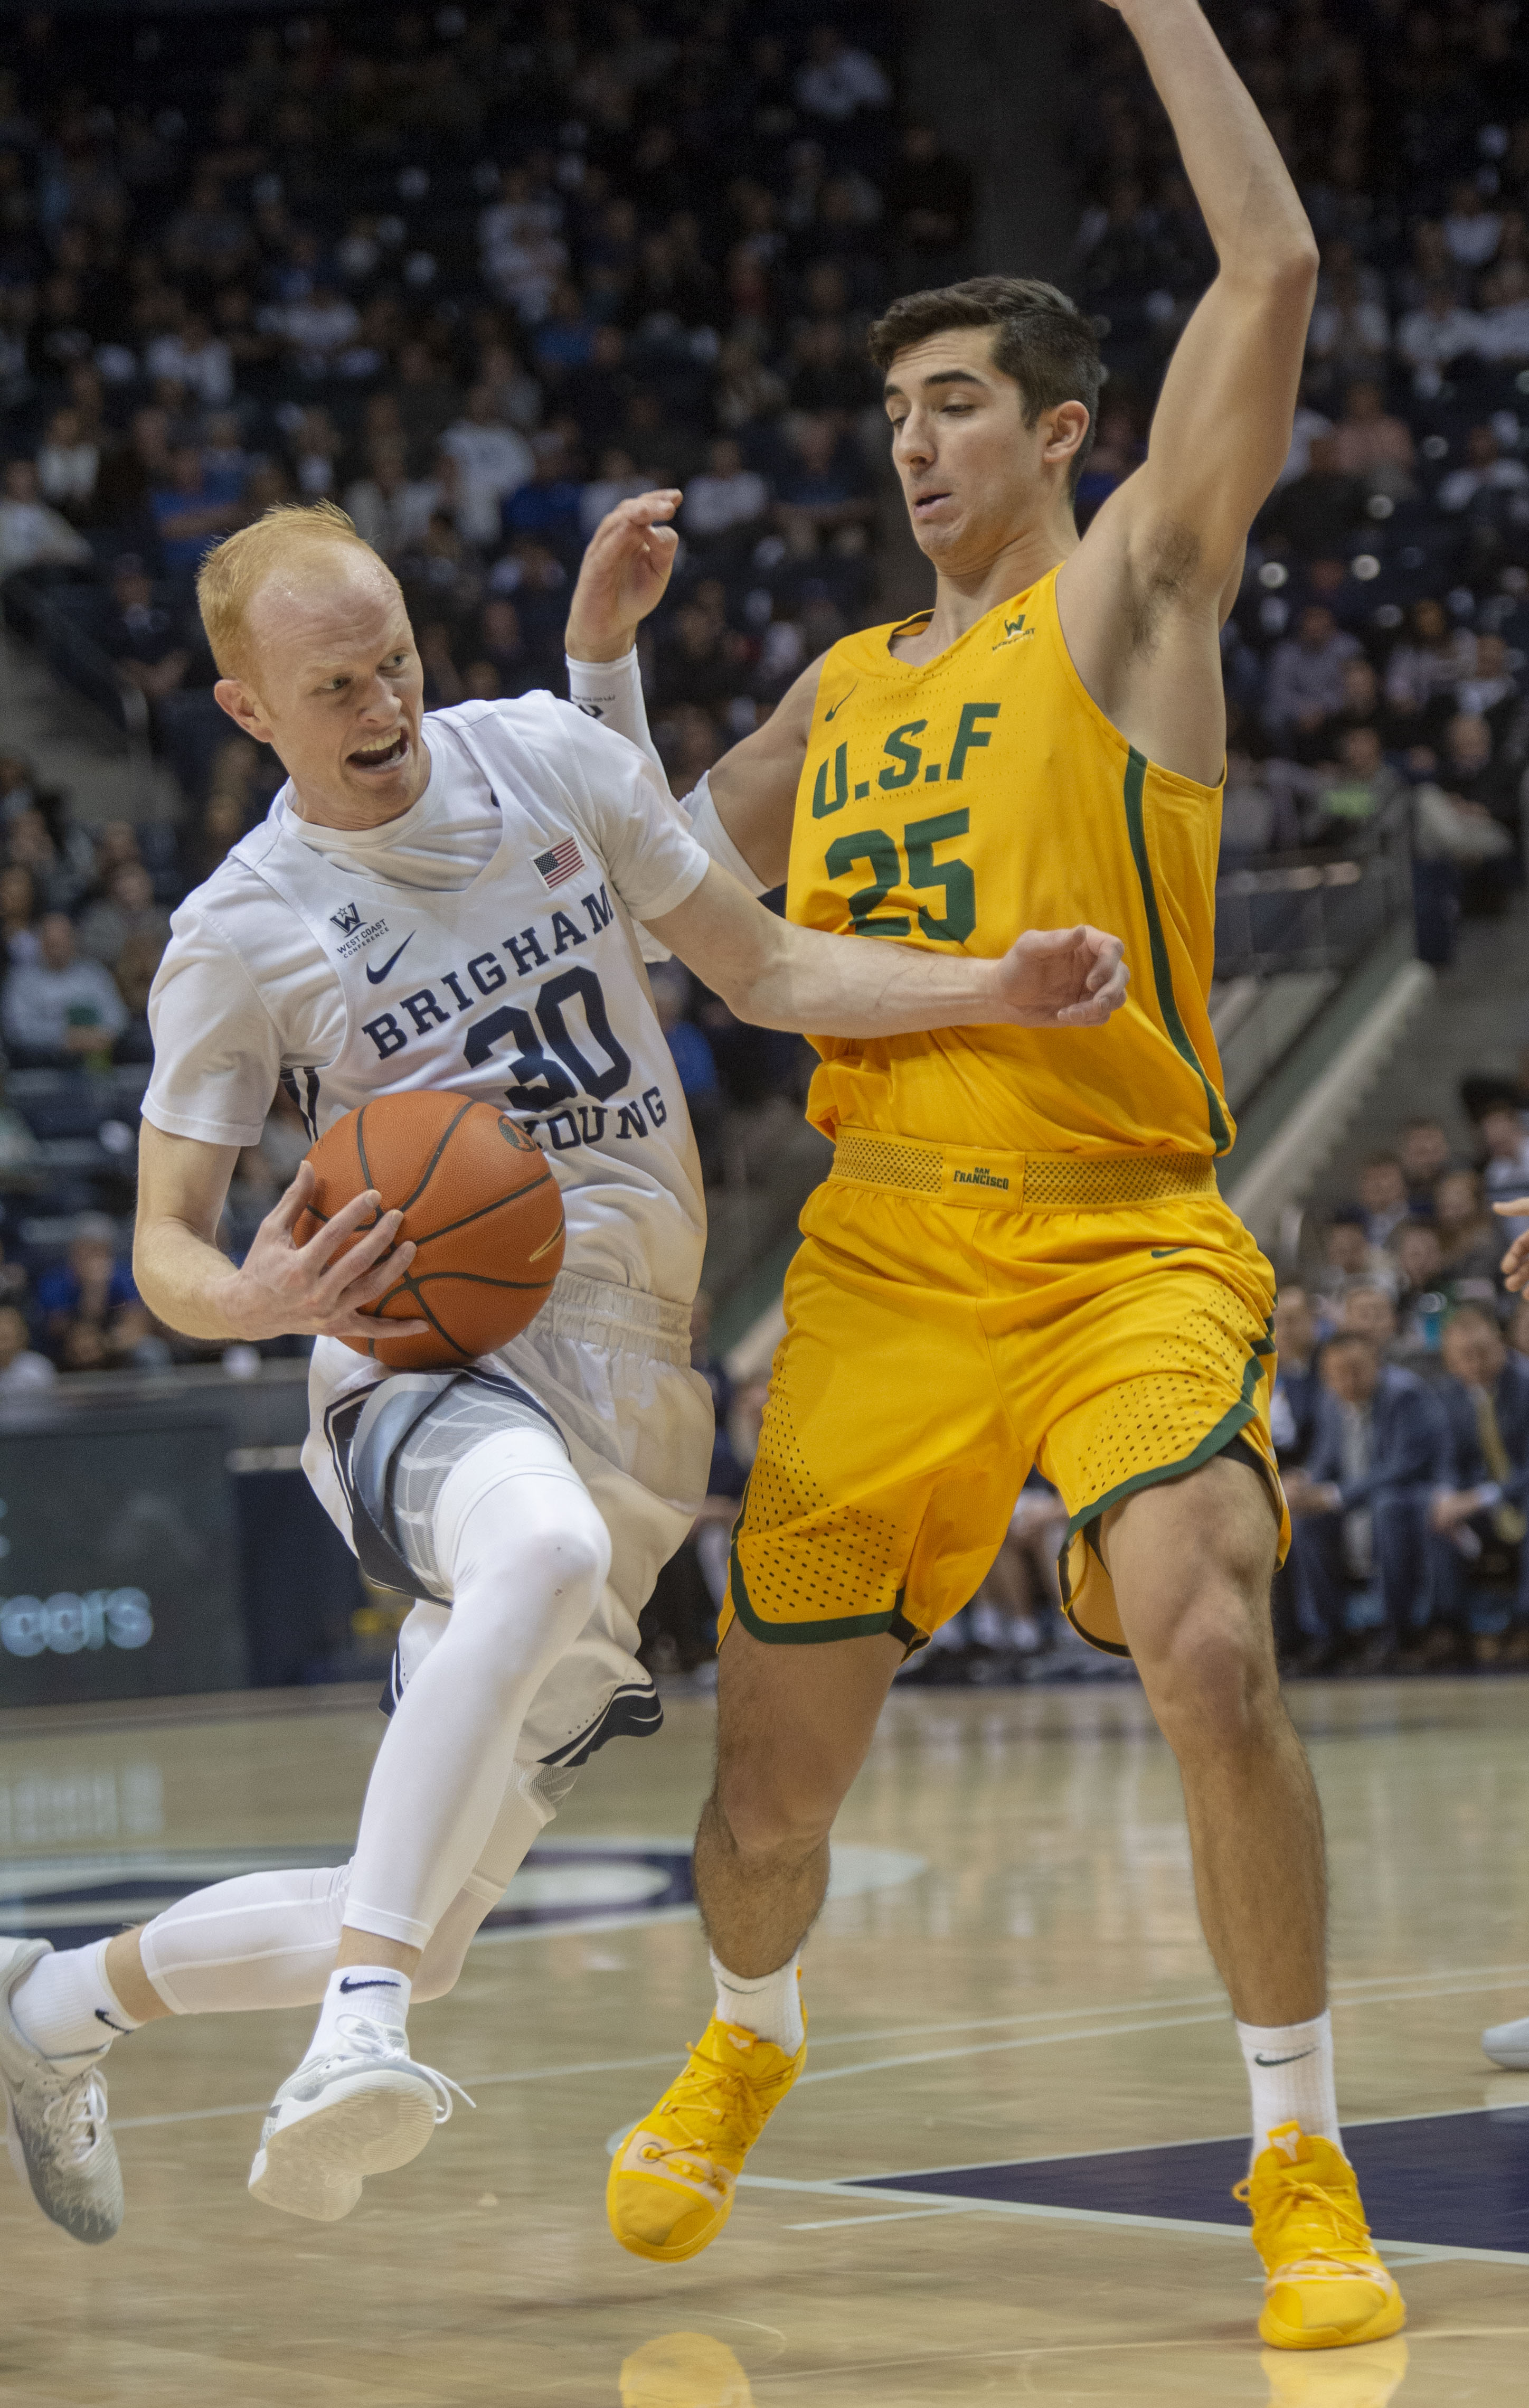 (Rick Egan  |  The Salt Lake Tribune)  Brigham Young Cougars guard TJ Haws (30) takes the ball inside as San Francisco Dons guard Jordan Ratinho (25) defends, in WCC basketball action at the Marriott Center, Thursday, February 21, 2018.